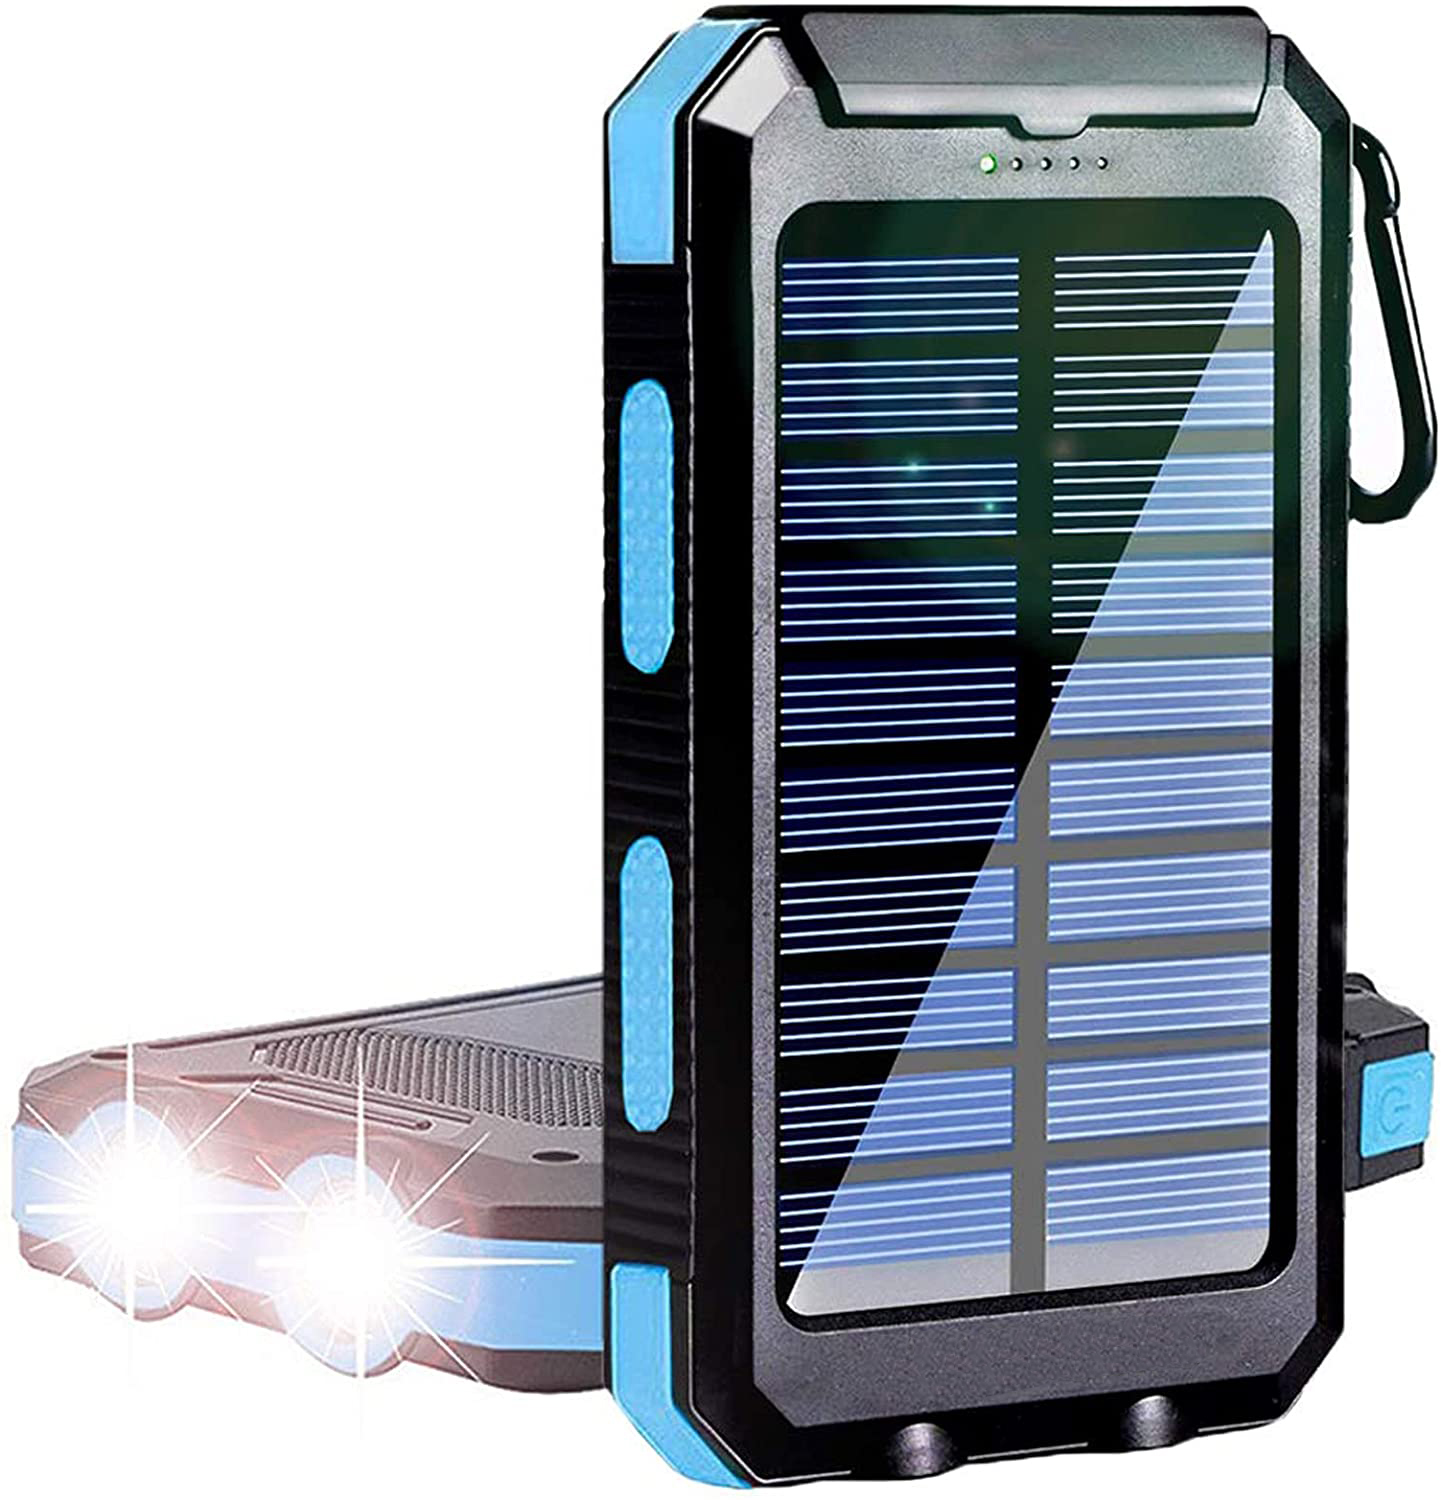 Outdoor Survival Camping Equipment 20000mAh Portable Waterproof Solar Power Charger Bank With LED Flashlights for Adventure Emer